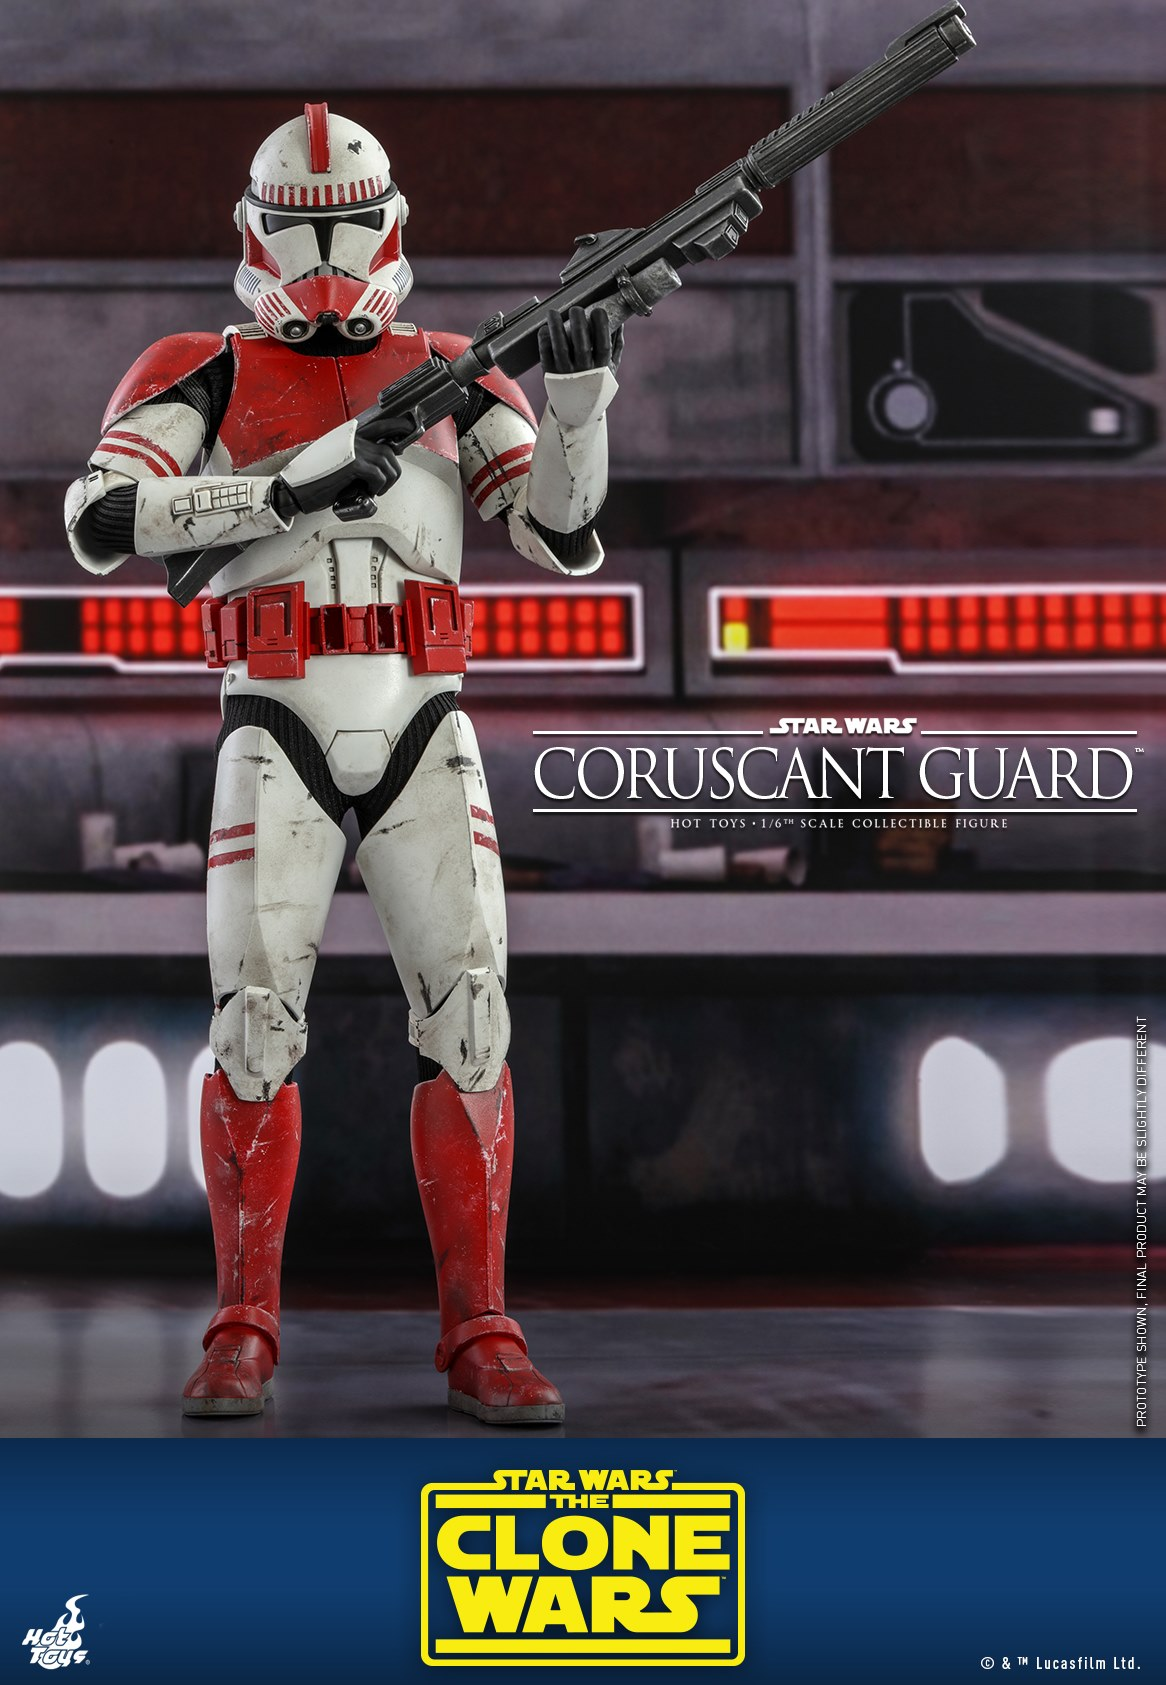 Hot Toys <a href='/organisation-242-coruscant-guard.html' class='qtip_motcle' tt_type='organisation' tt_id=242>Coruscant Guard</a> TCW